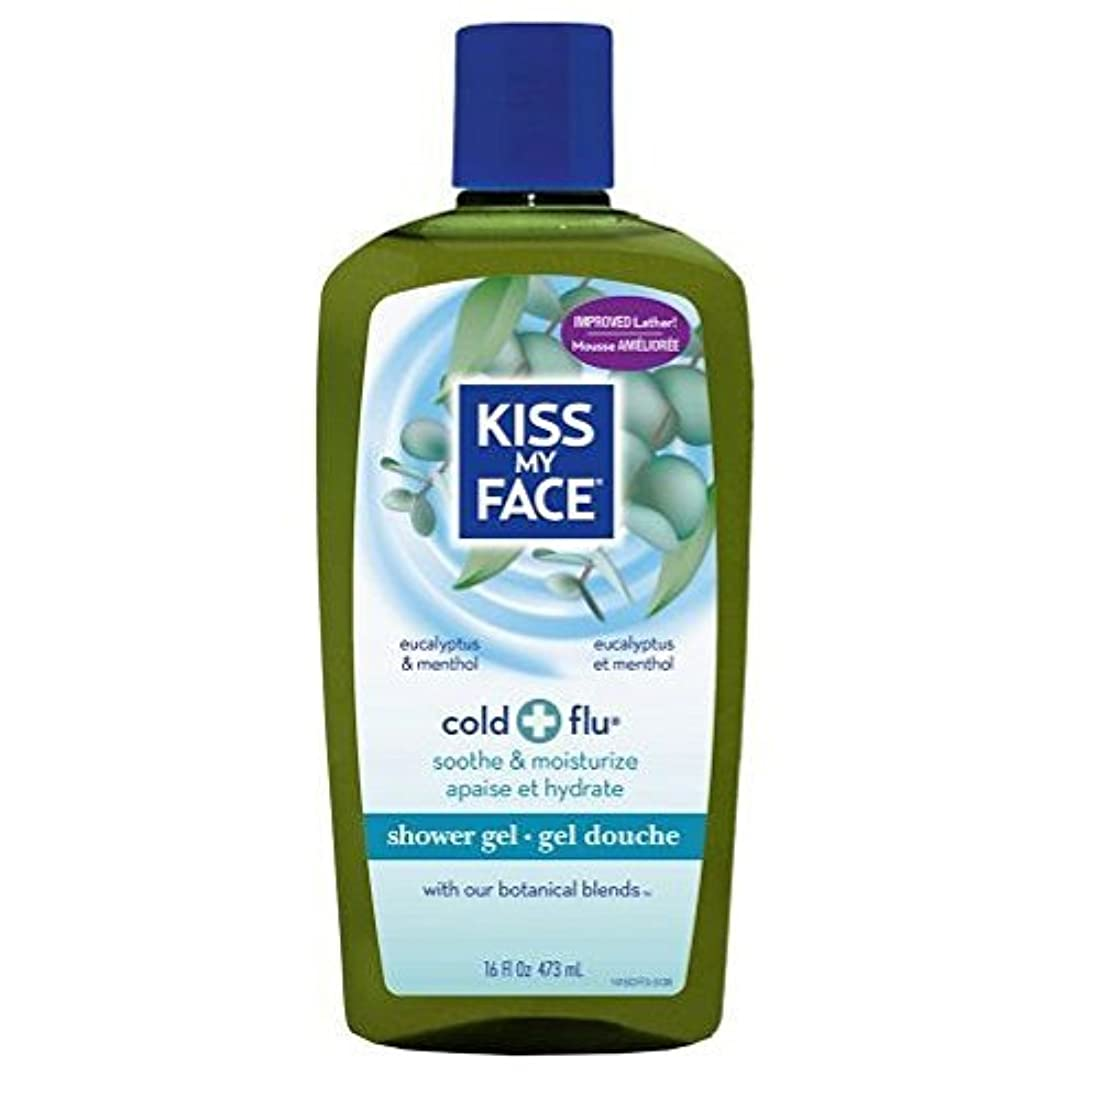 ヒューズ刈り取る脳x Kiss My Face Bath and Shower Gel Cold And Flu Eucalyptus and Menthol - 16 fl oz by Kiss My Face